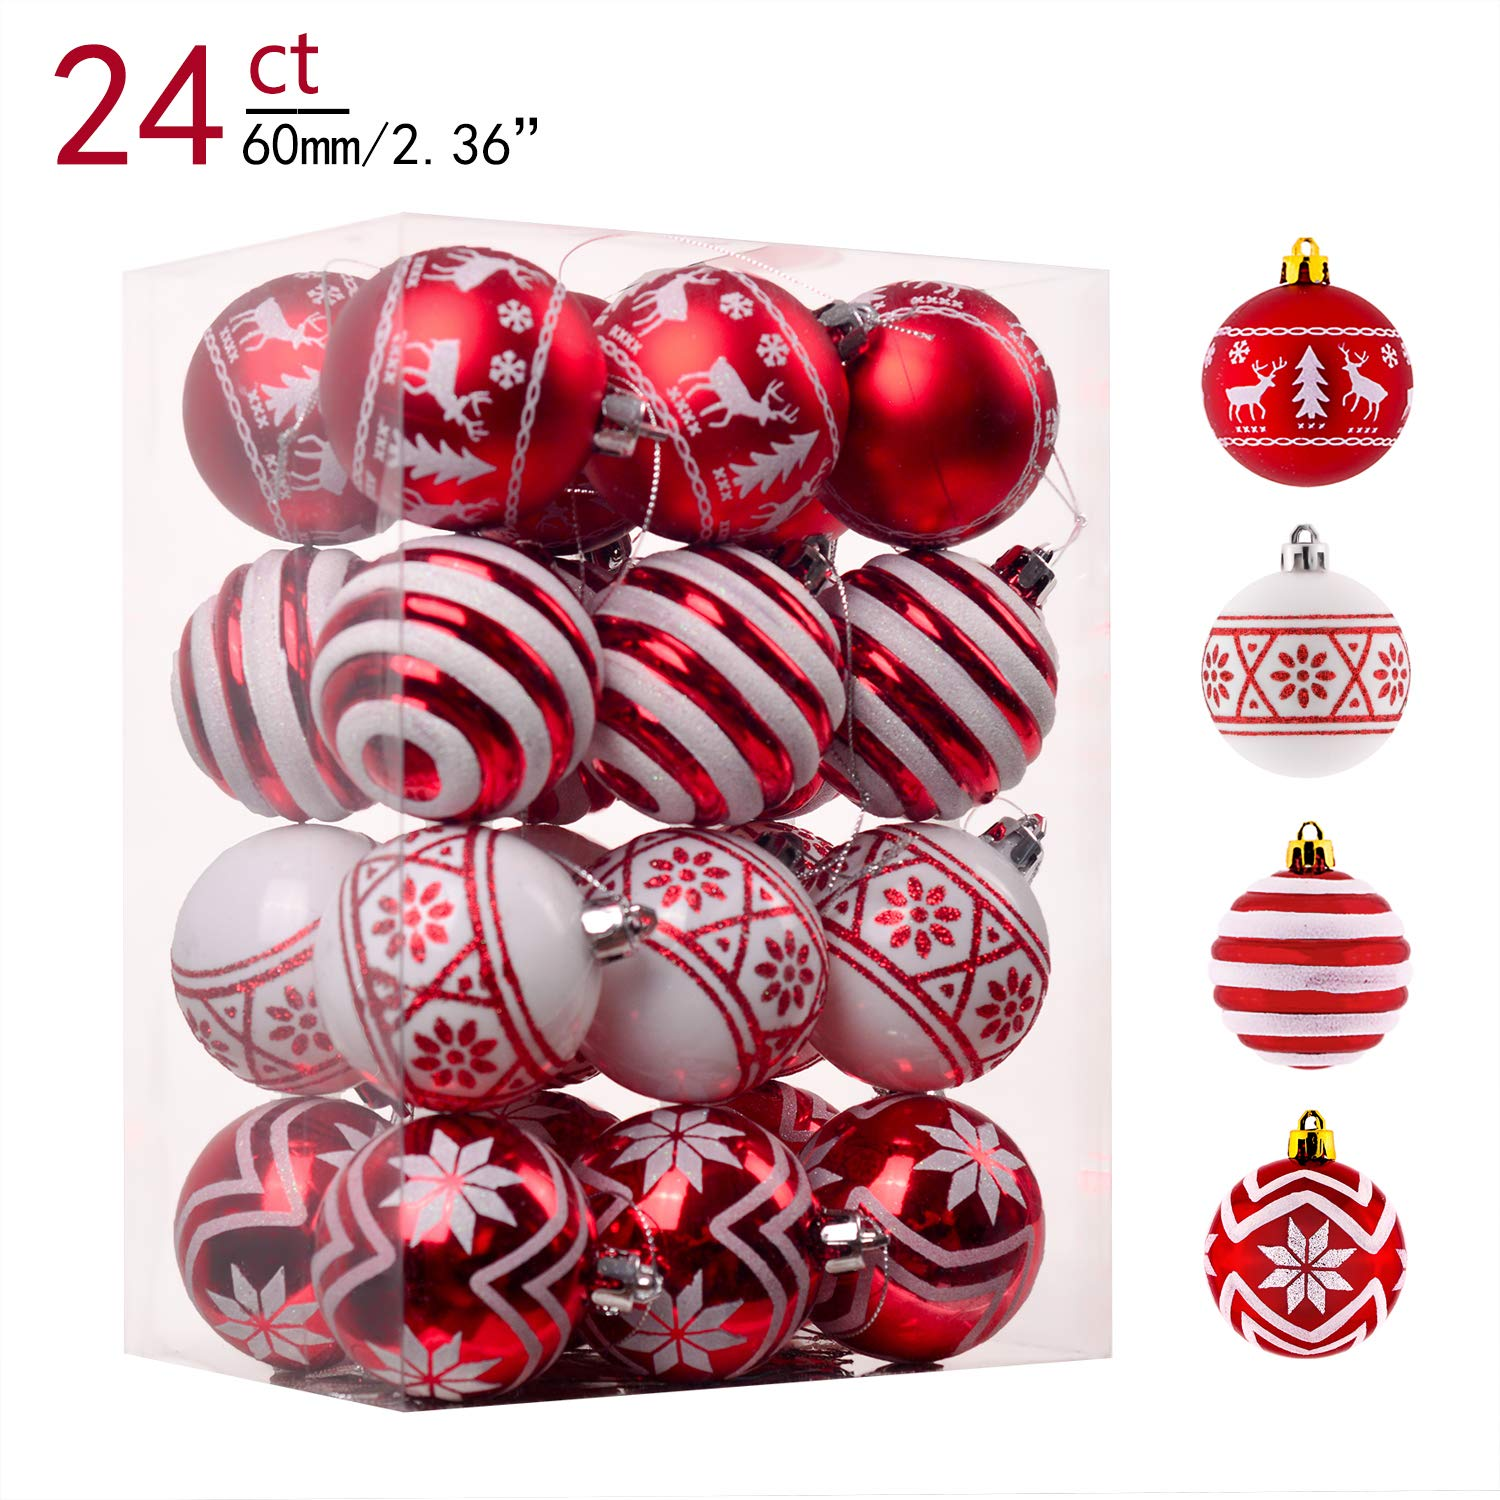 Teresa's Collections 24ct 60mm Traditional Red and White Shatterproof Christmas Ball Ornaments Decoration,Themed with Tree Skirt(Not Included)